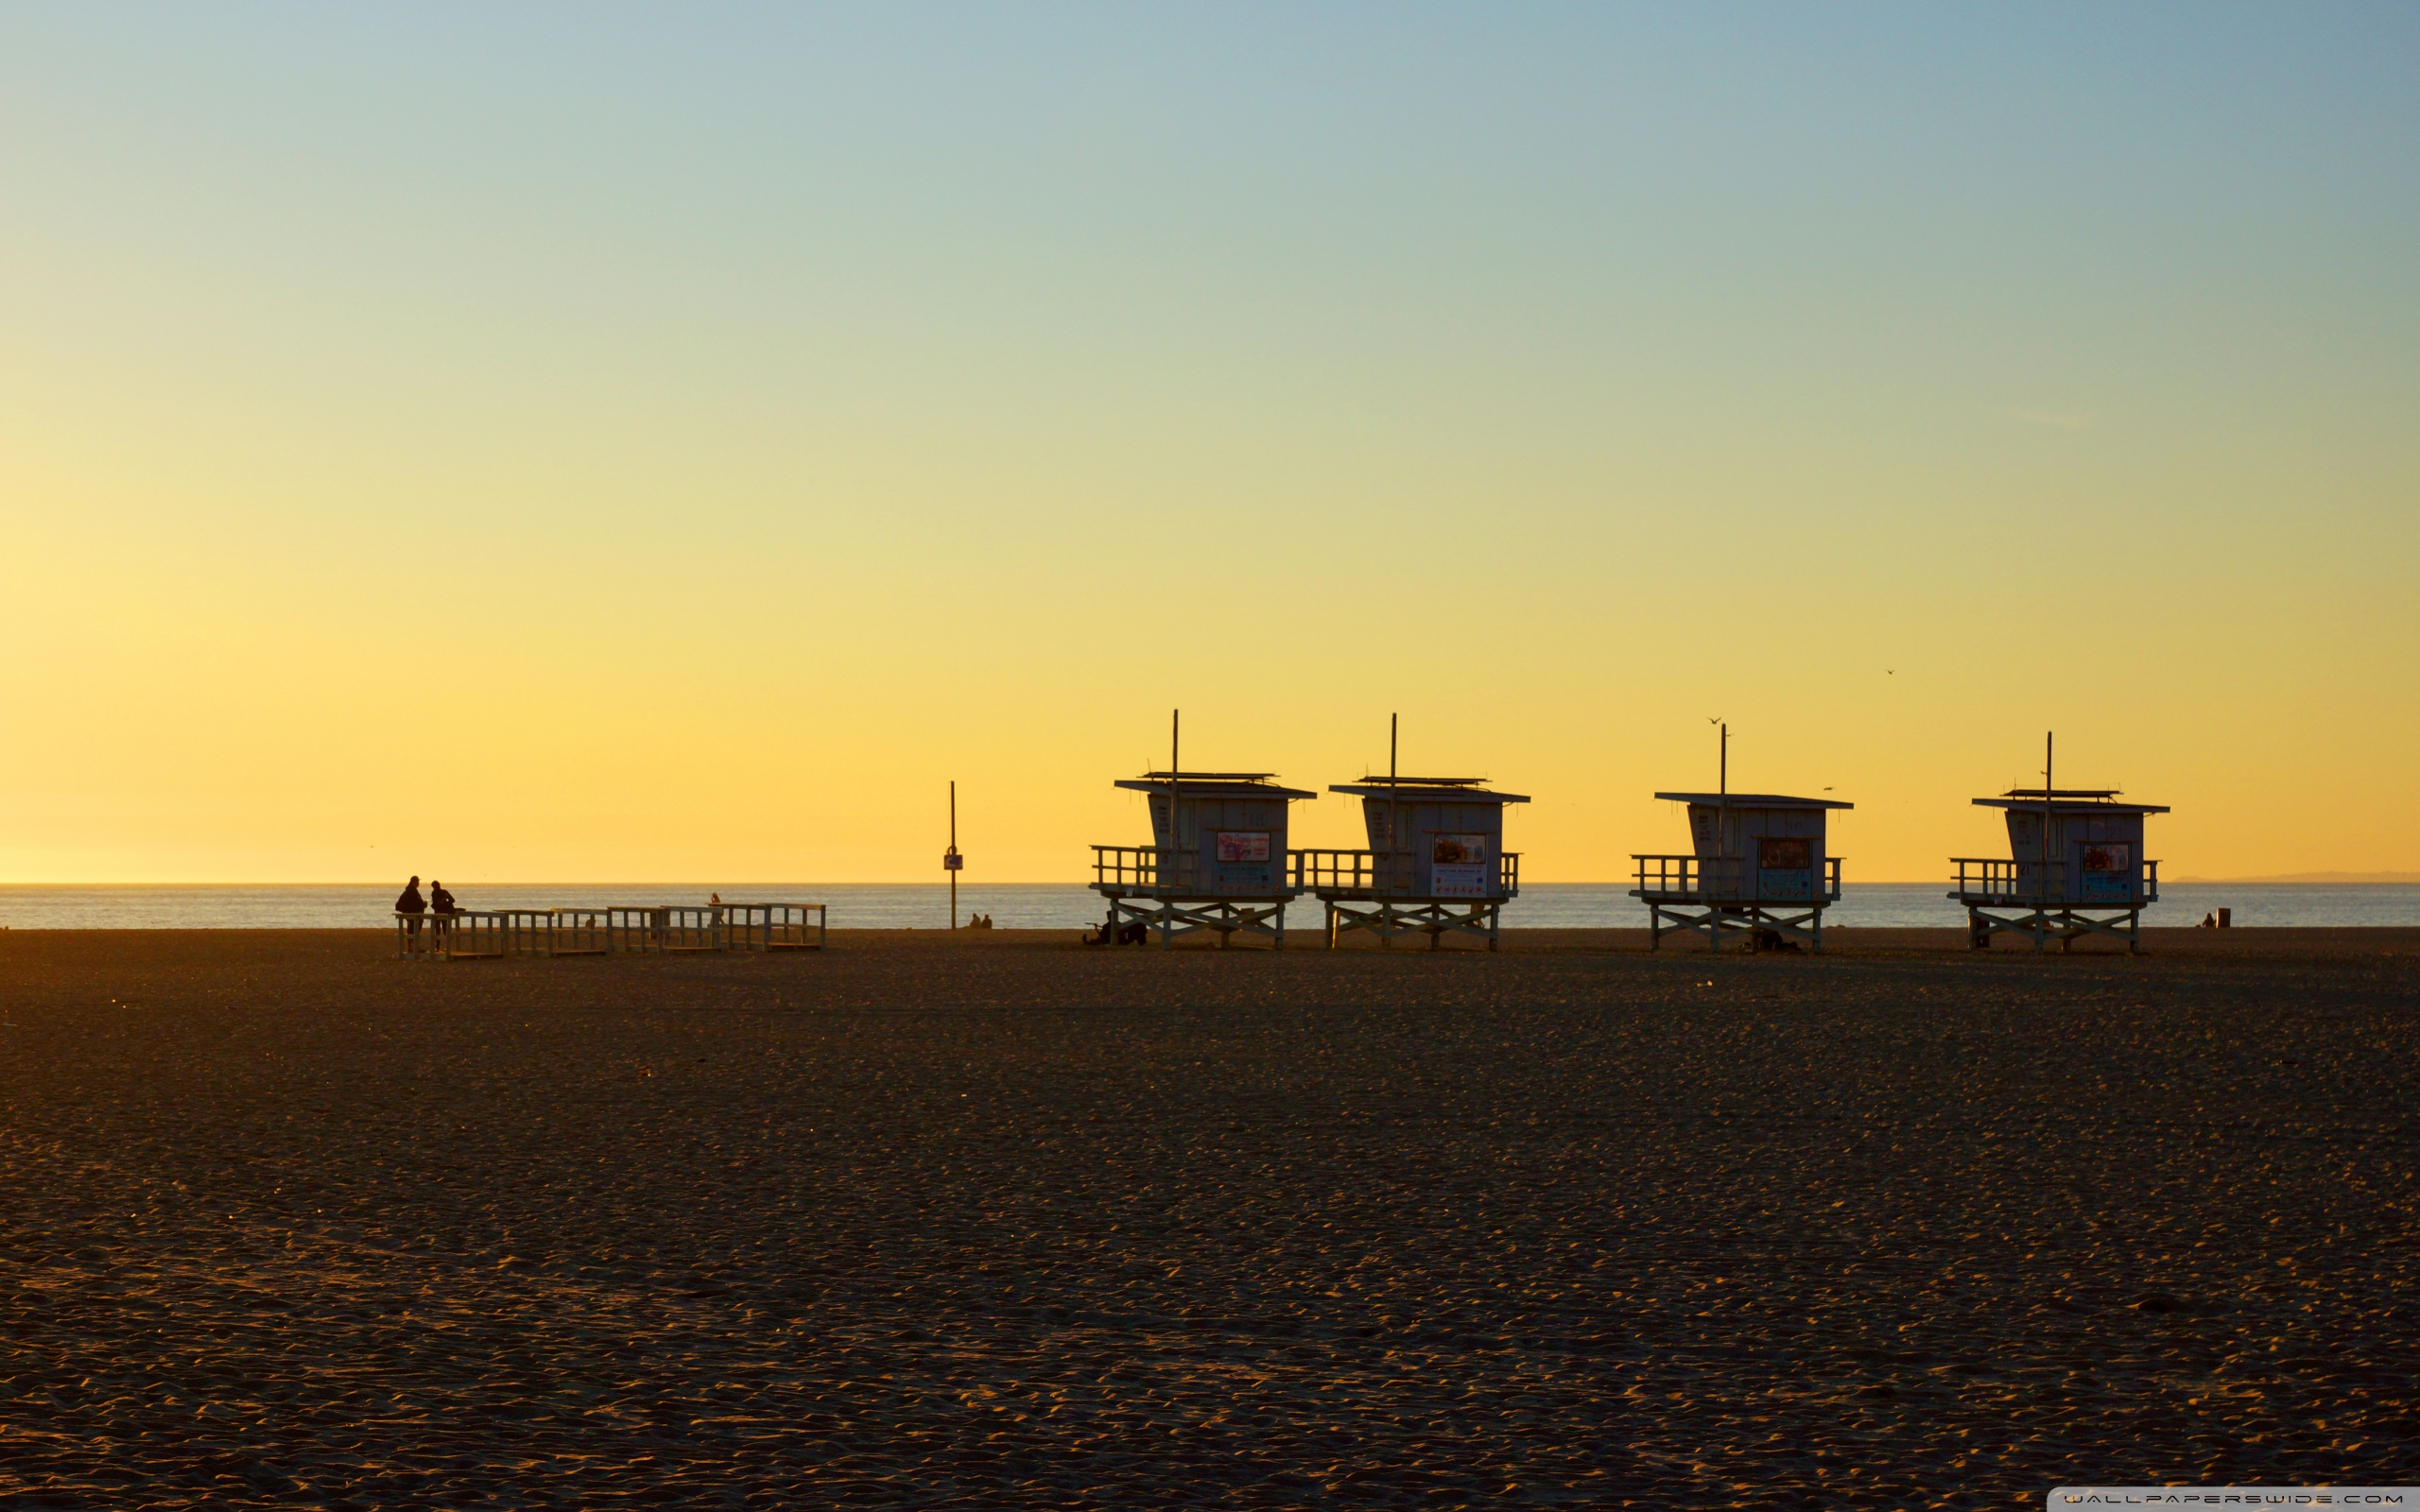 Los Angeles Venice Beach 4K HD Desktop Wallpaper for Dual 2560x1600